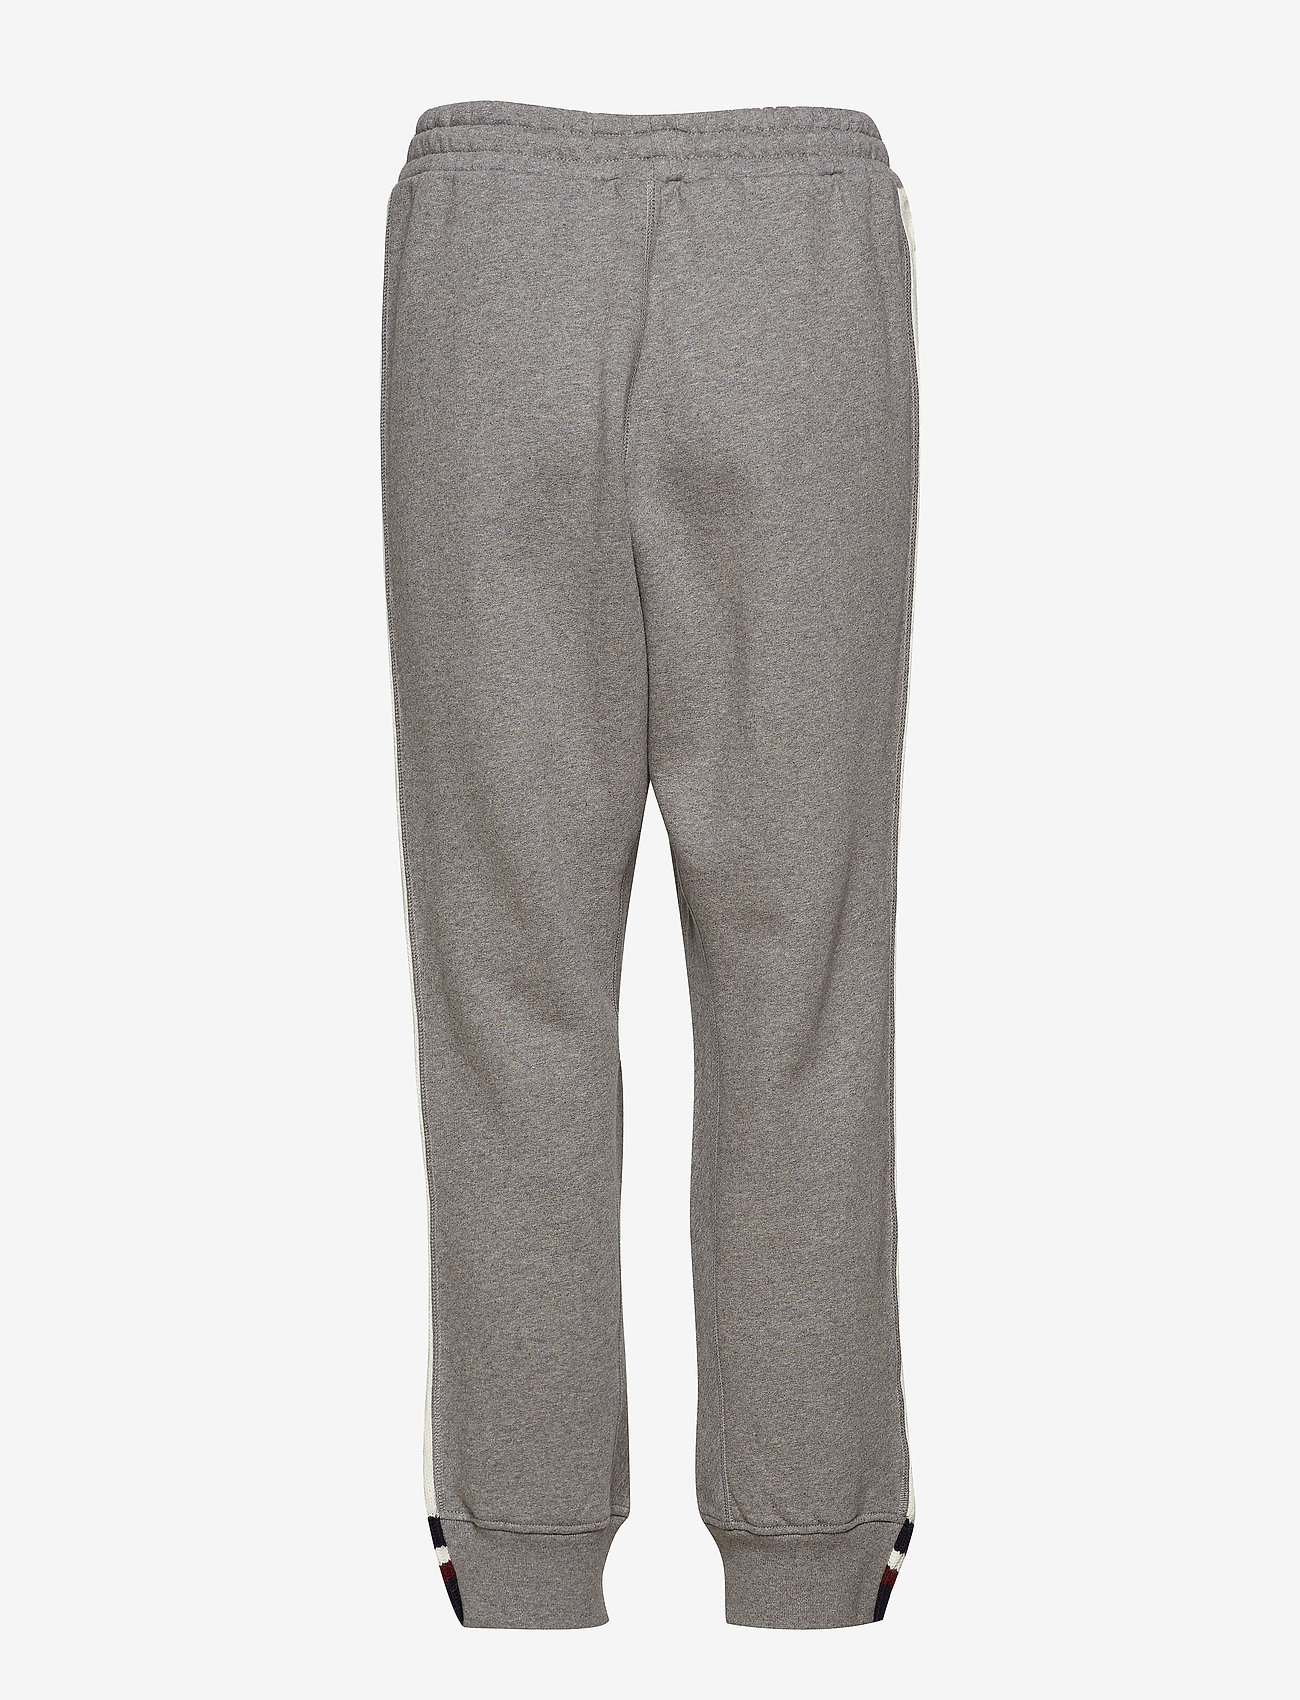 Hilfiger Collection - CABLE KNIT STRIPE TRACK PANT - sweatpants - grey marl / multi - 1